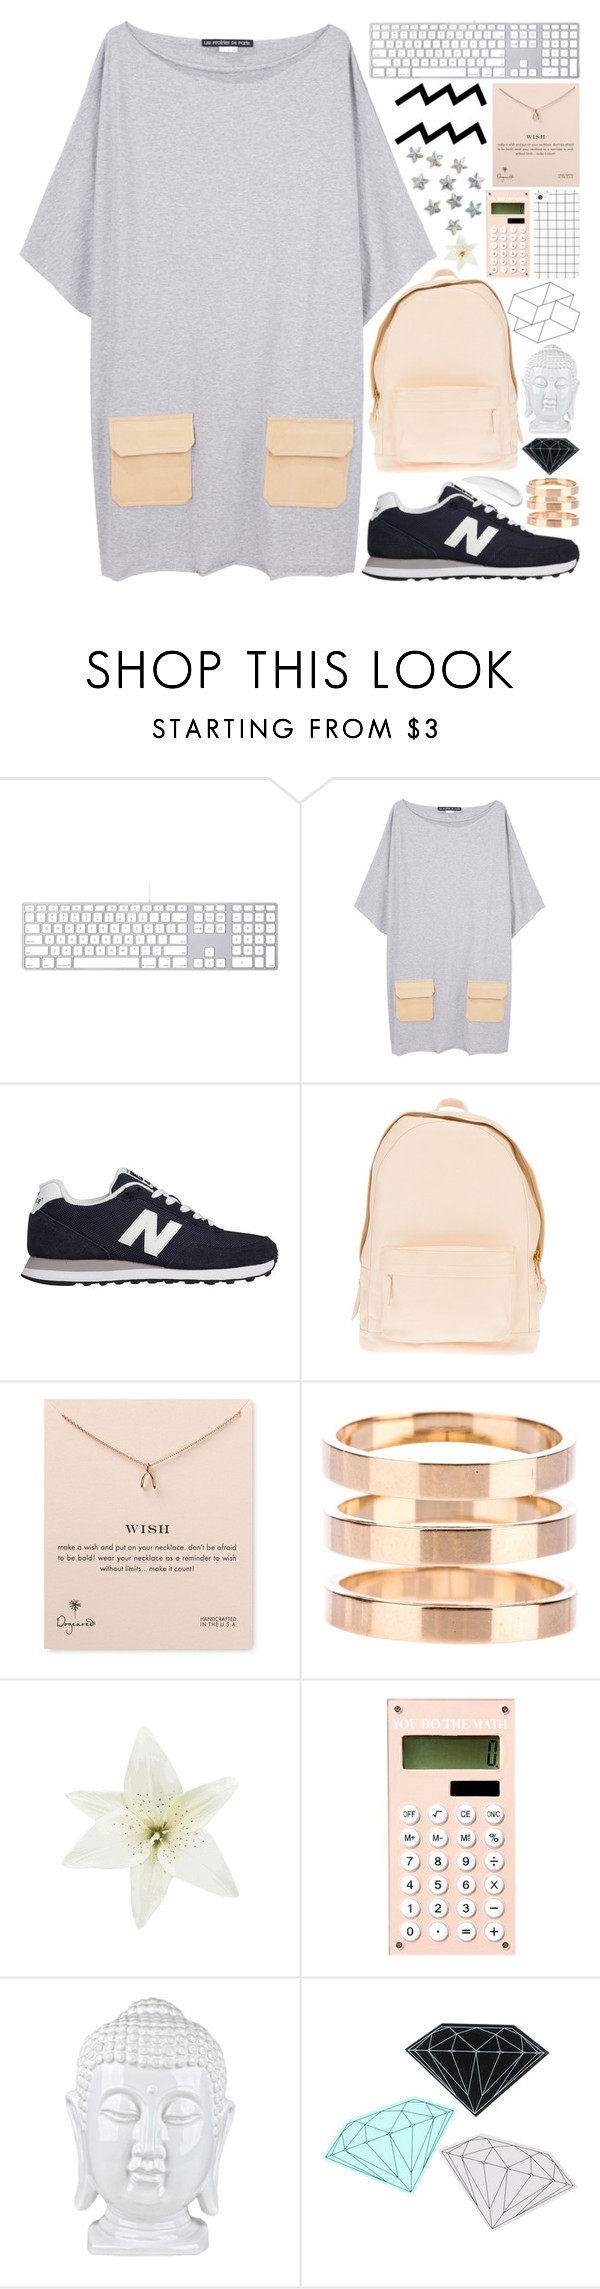 """""""people call me a ghost"""" by indiedarling ❤ liked on Polyvore featuring Les Prairies de Paris, New Balance, PB 0110, Dogeared, Repossi, Clips, Diamond Supply Co., Koh Gen Do, kikitags and lookingforadventures"""